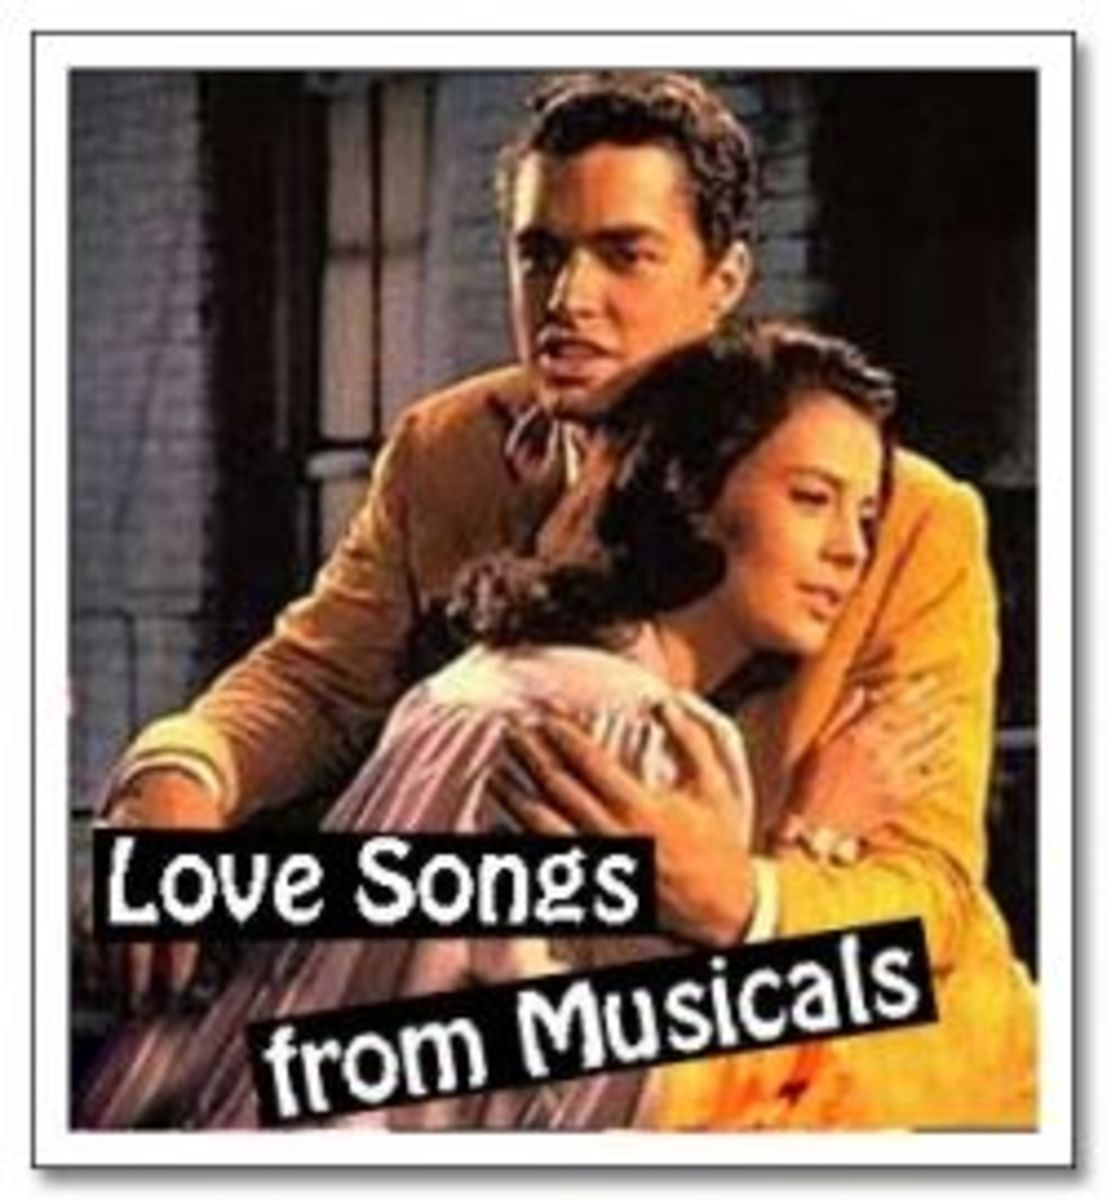 Love Songs From Musicals for Your Wedding | HubPages